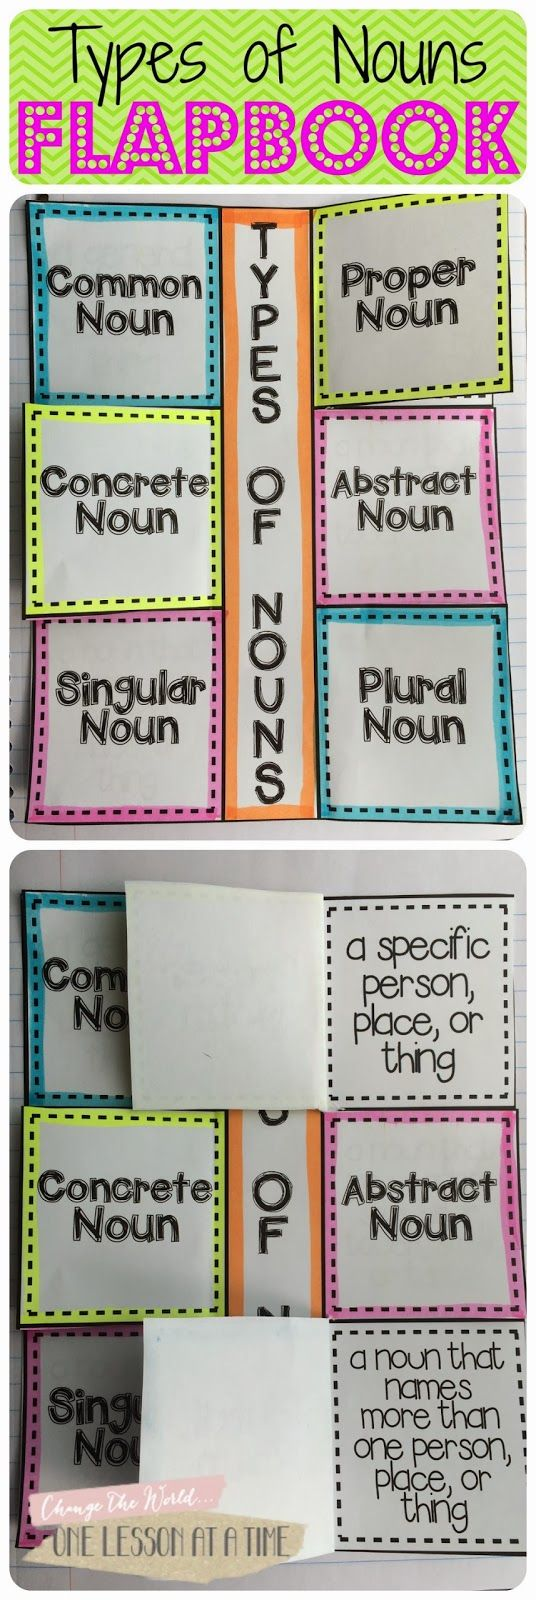 Hey, friends! It's Blair from One Lesson at a Time, here to bring you a freebie for your ELA interactive...